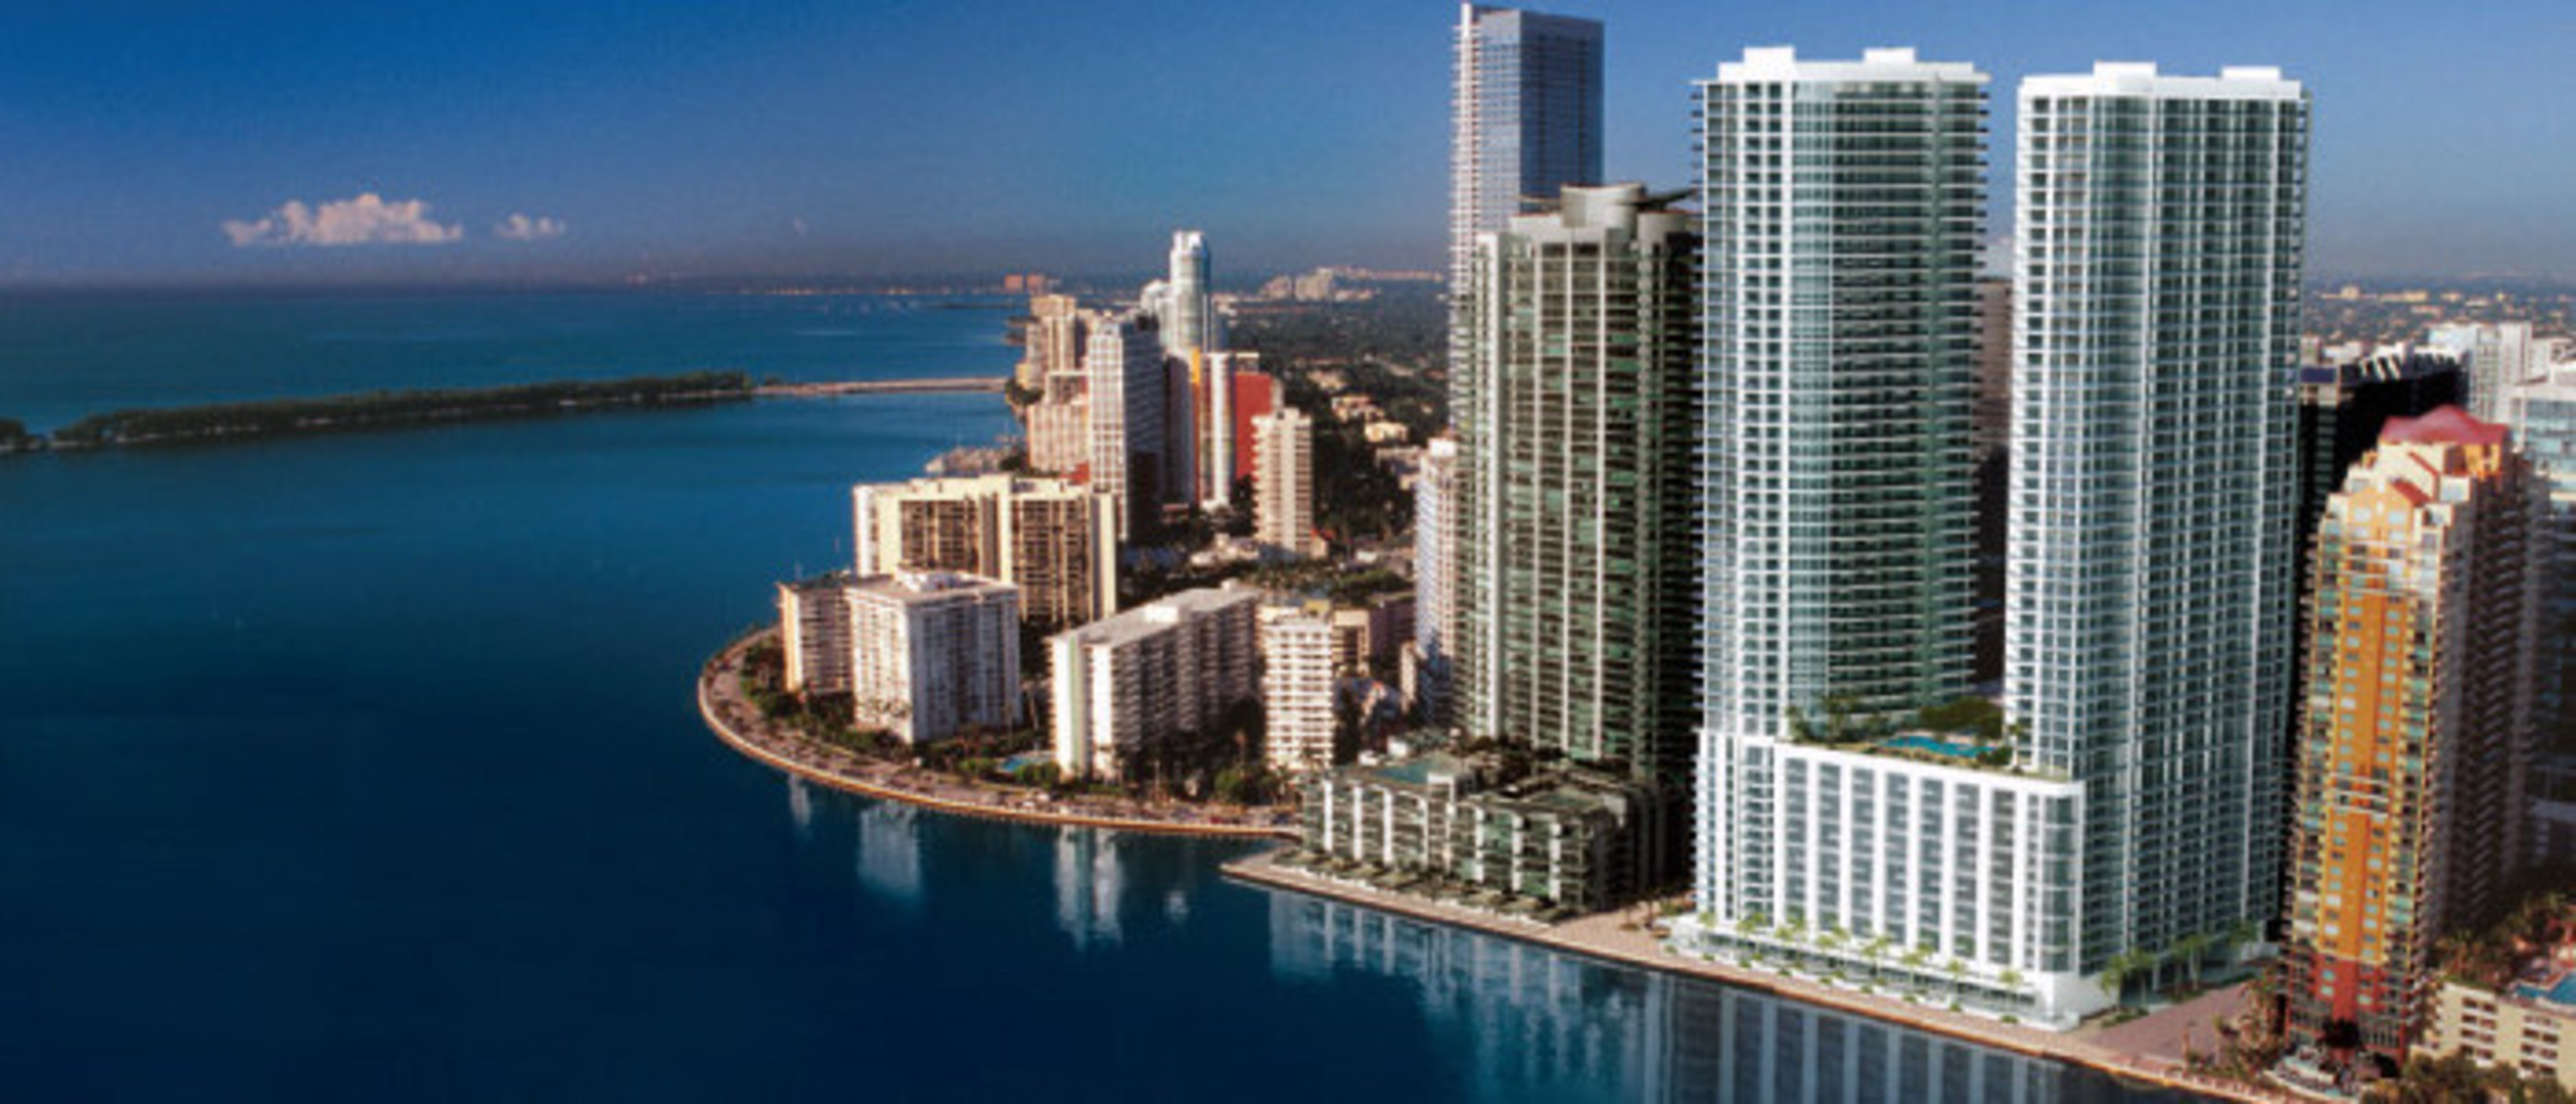 Early rendering of 1201 Brickell Bay Drive